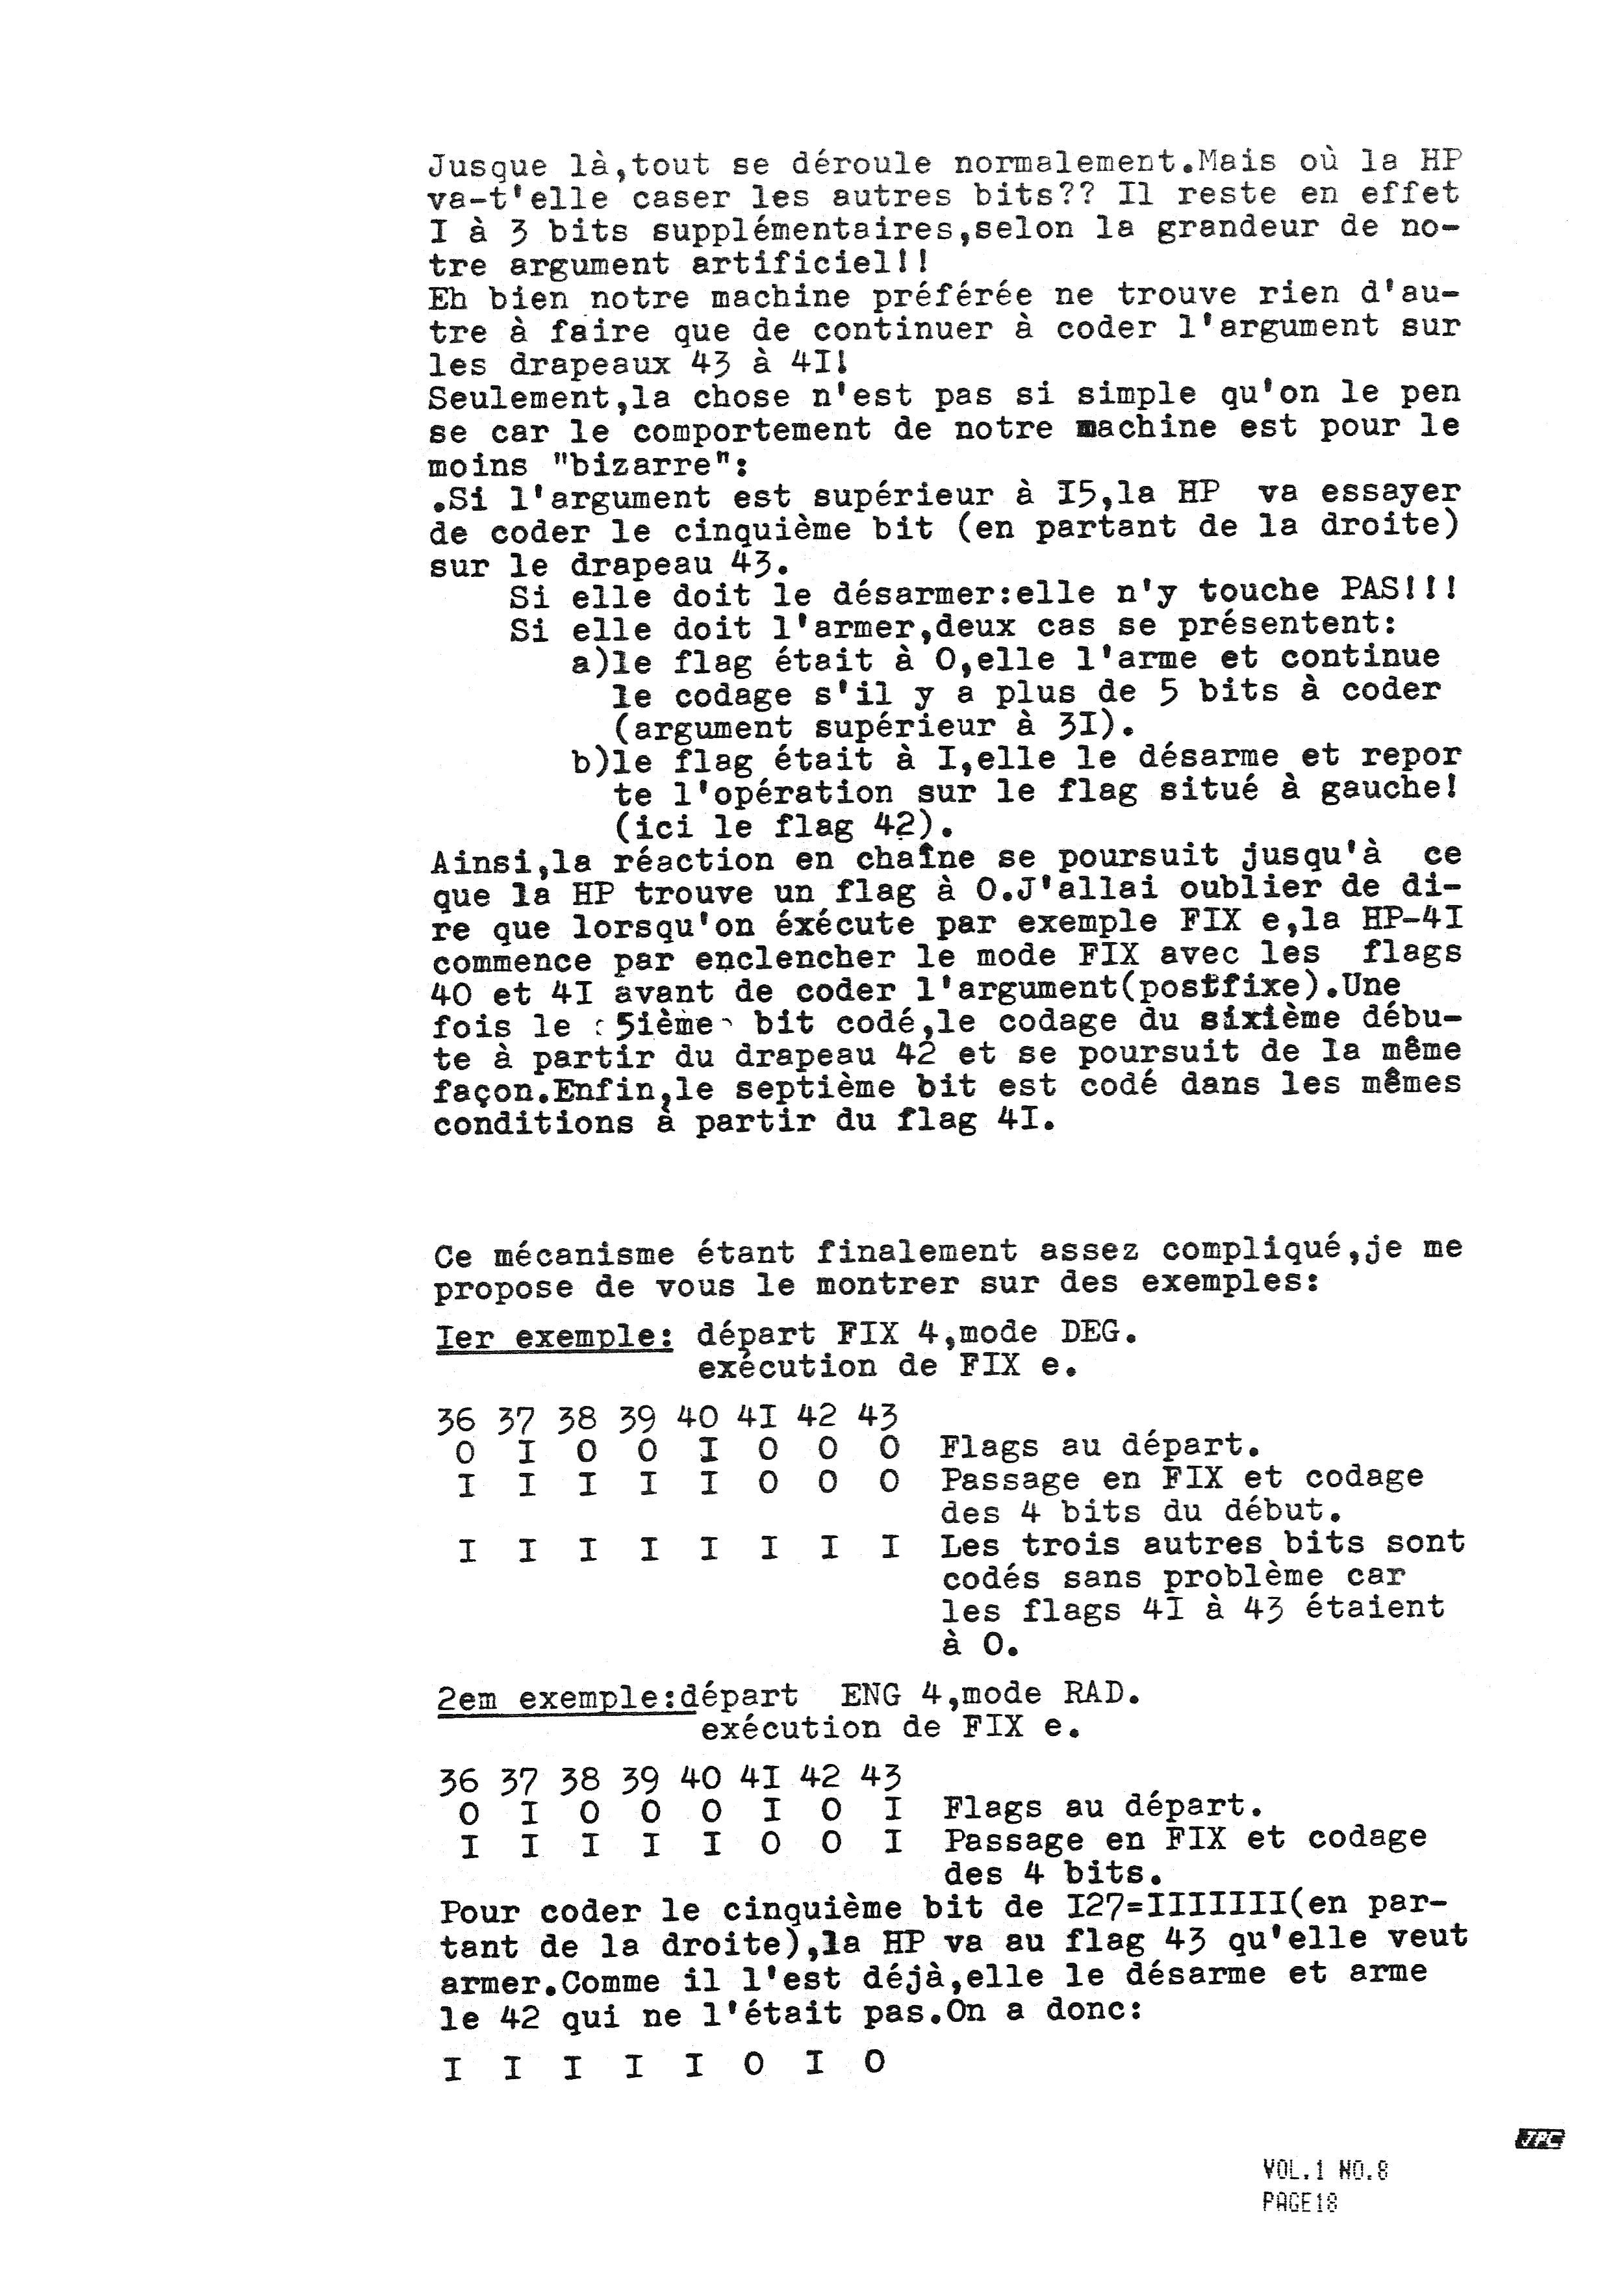 Jp-8-page-18-1000